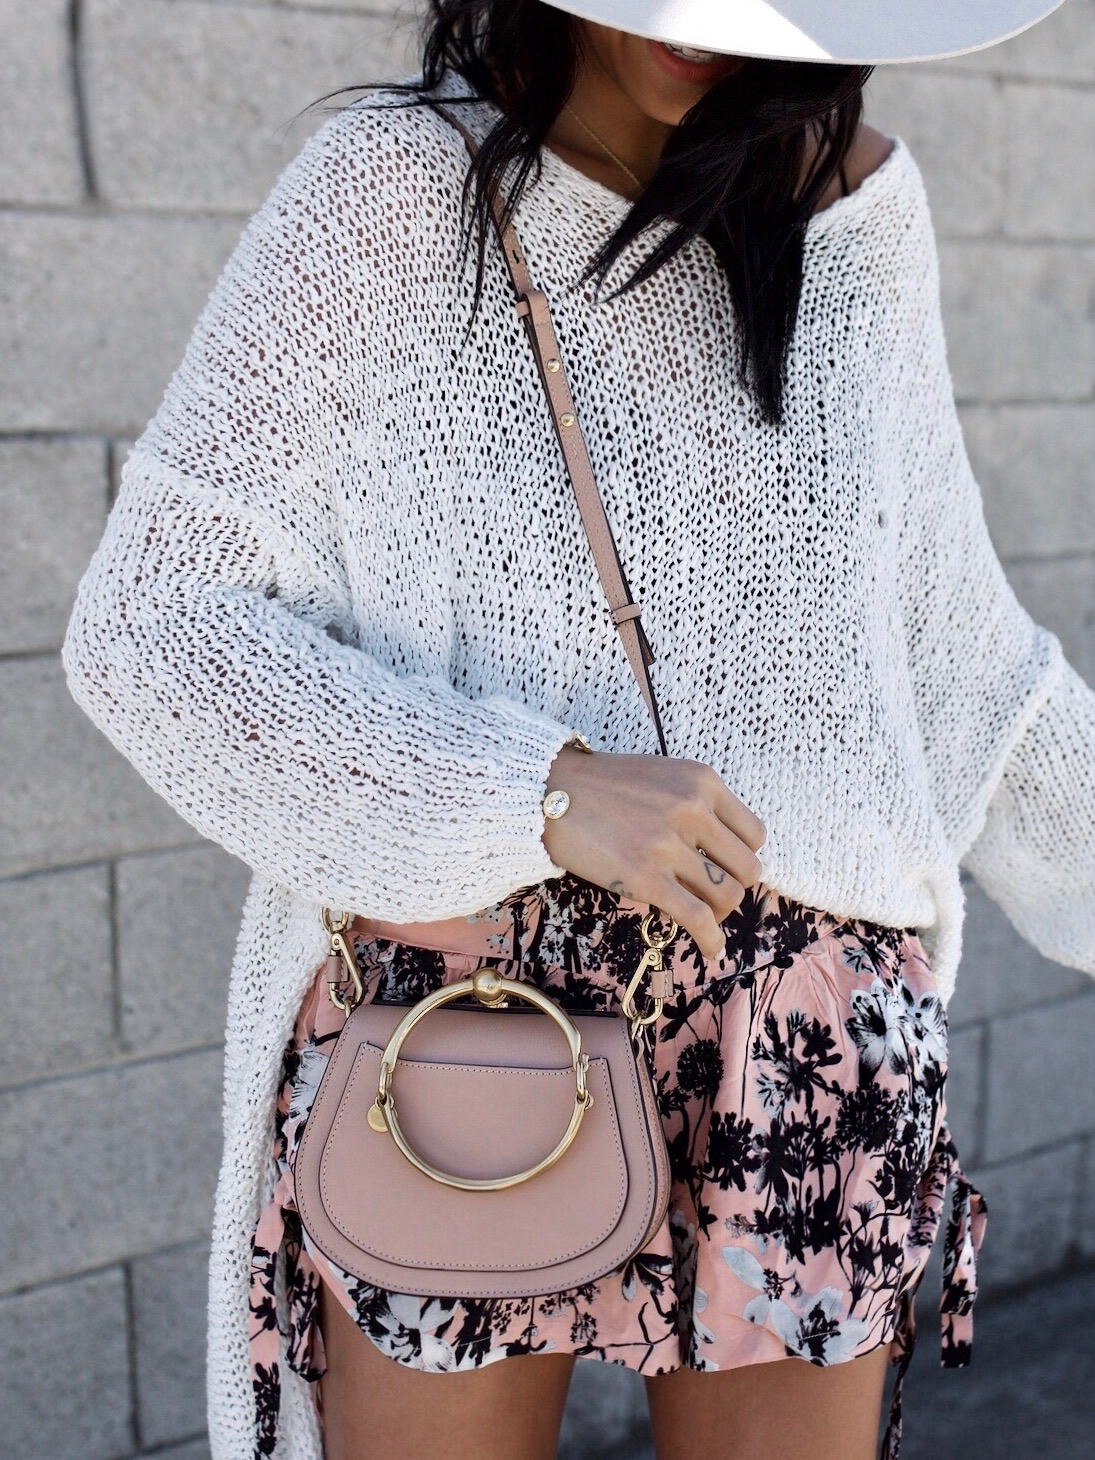 What to Wear in Spring | Chloe Nile Bag | Free People Sweater